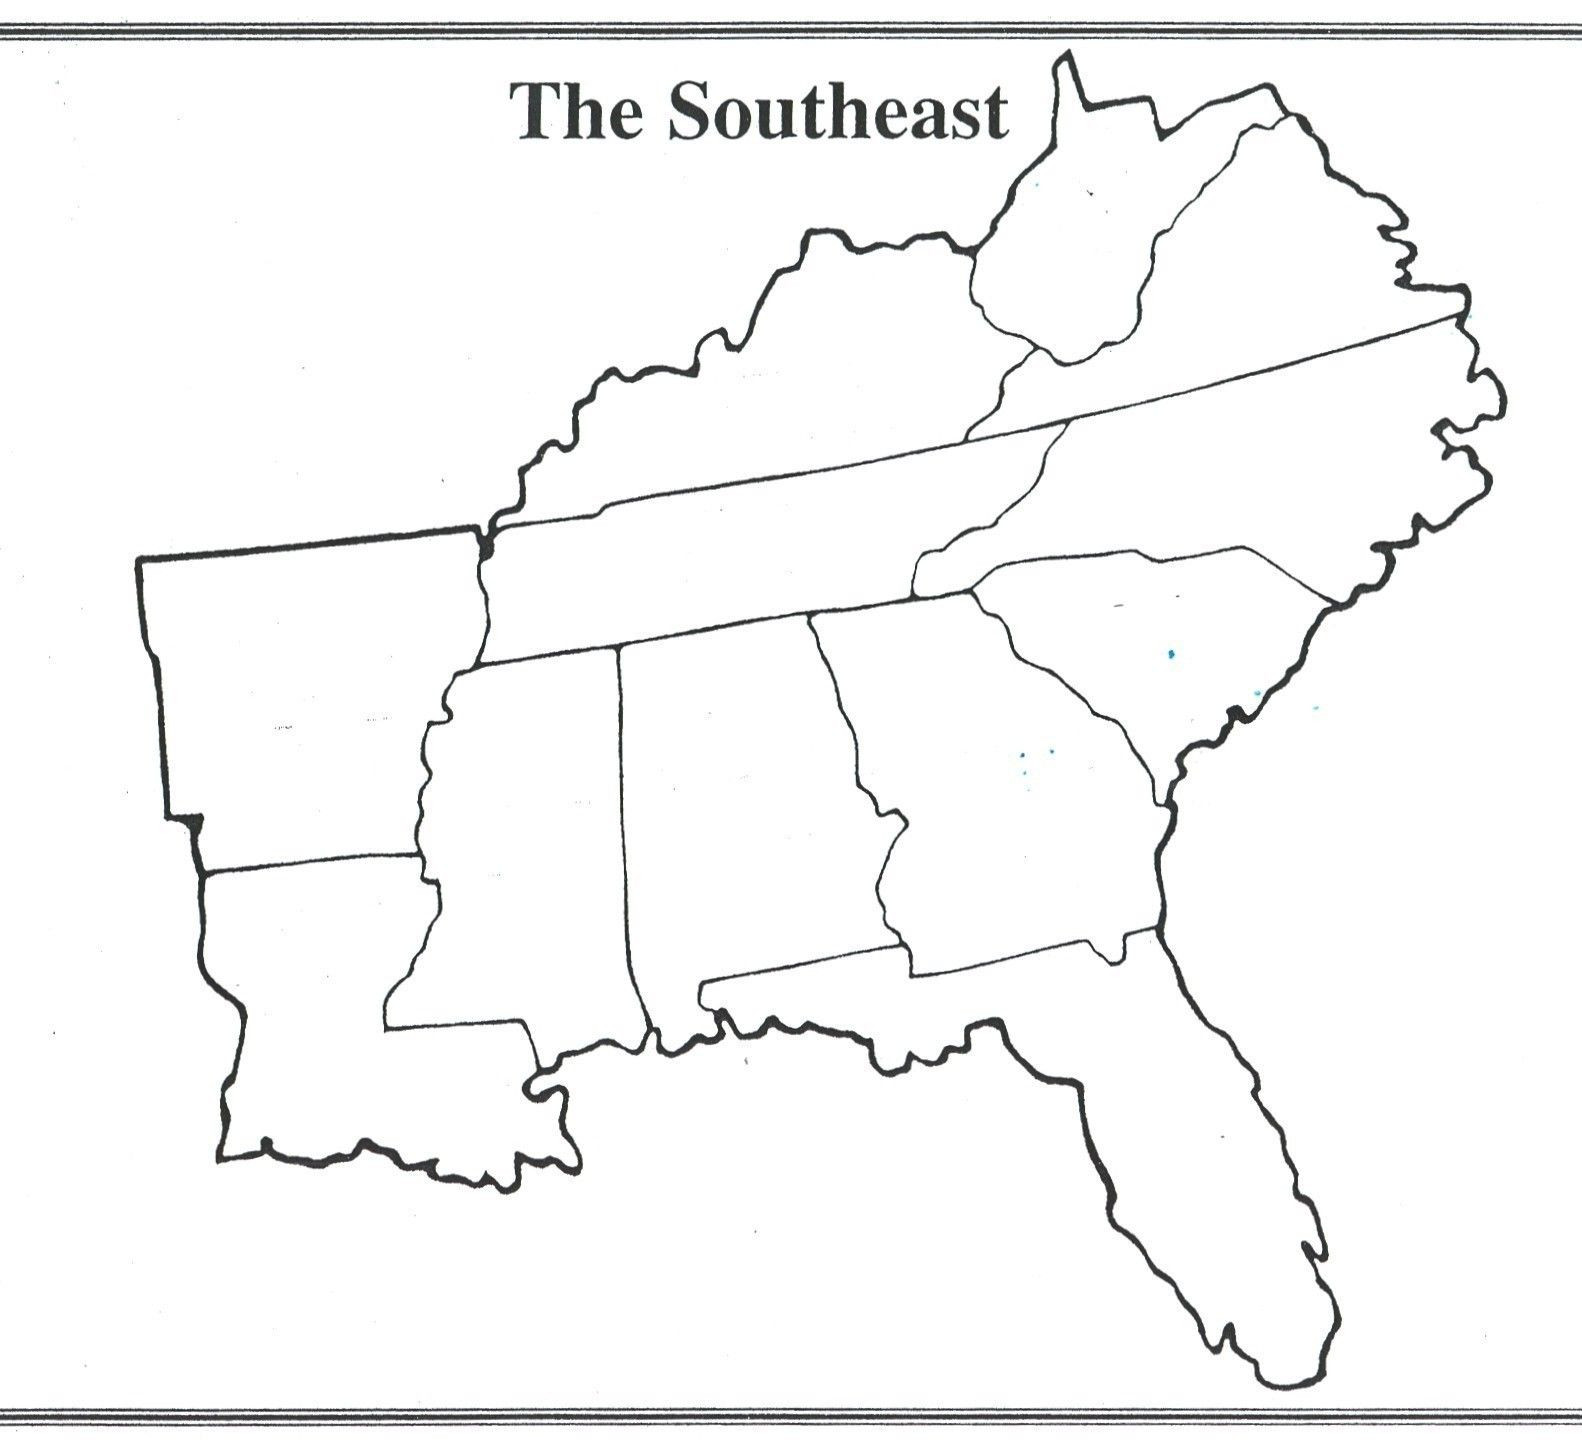 Printable States and Capitals Quiz Interesting Blank Us Map Quiz Printable south Eastern States